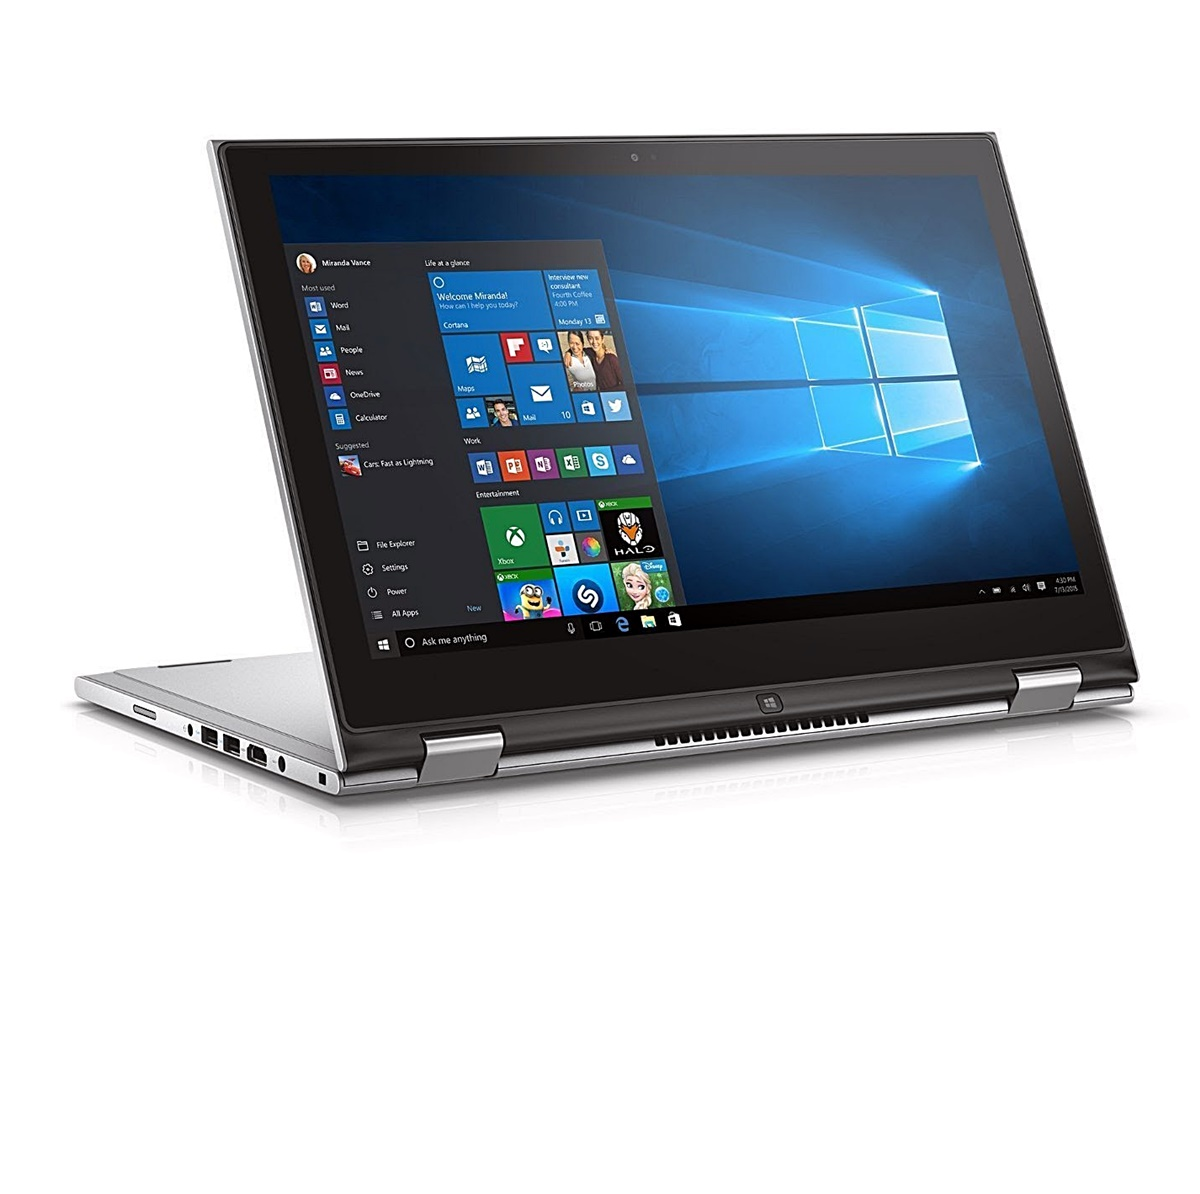 Dell Inspiron 13 7000 Series 2-in-1 Intel Pentium CPU